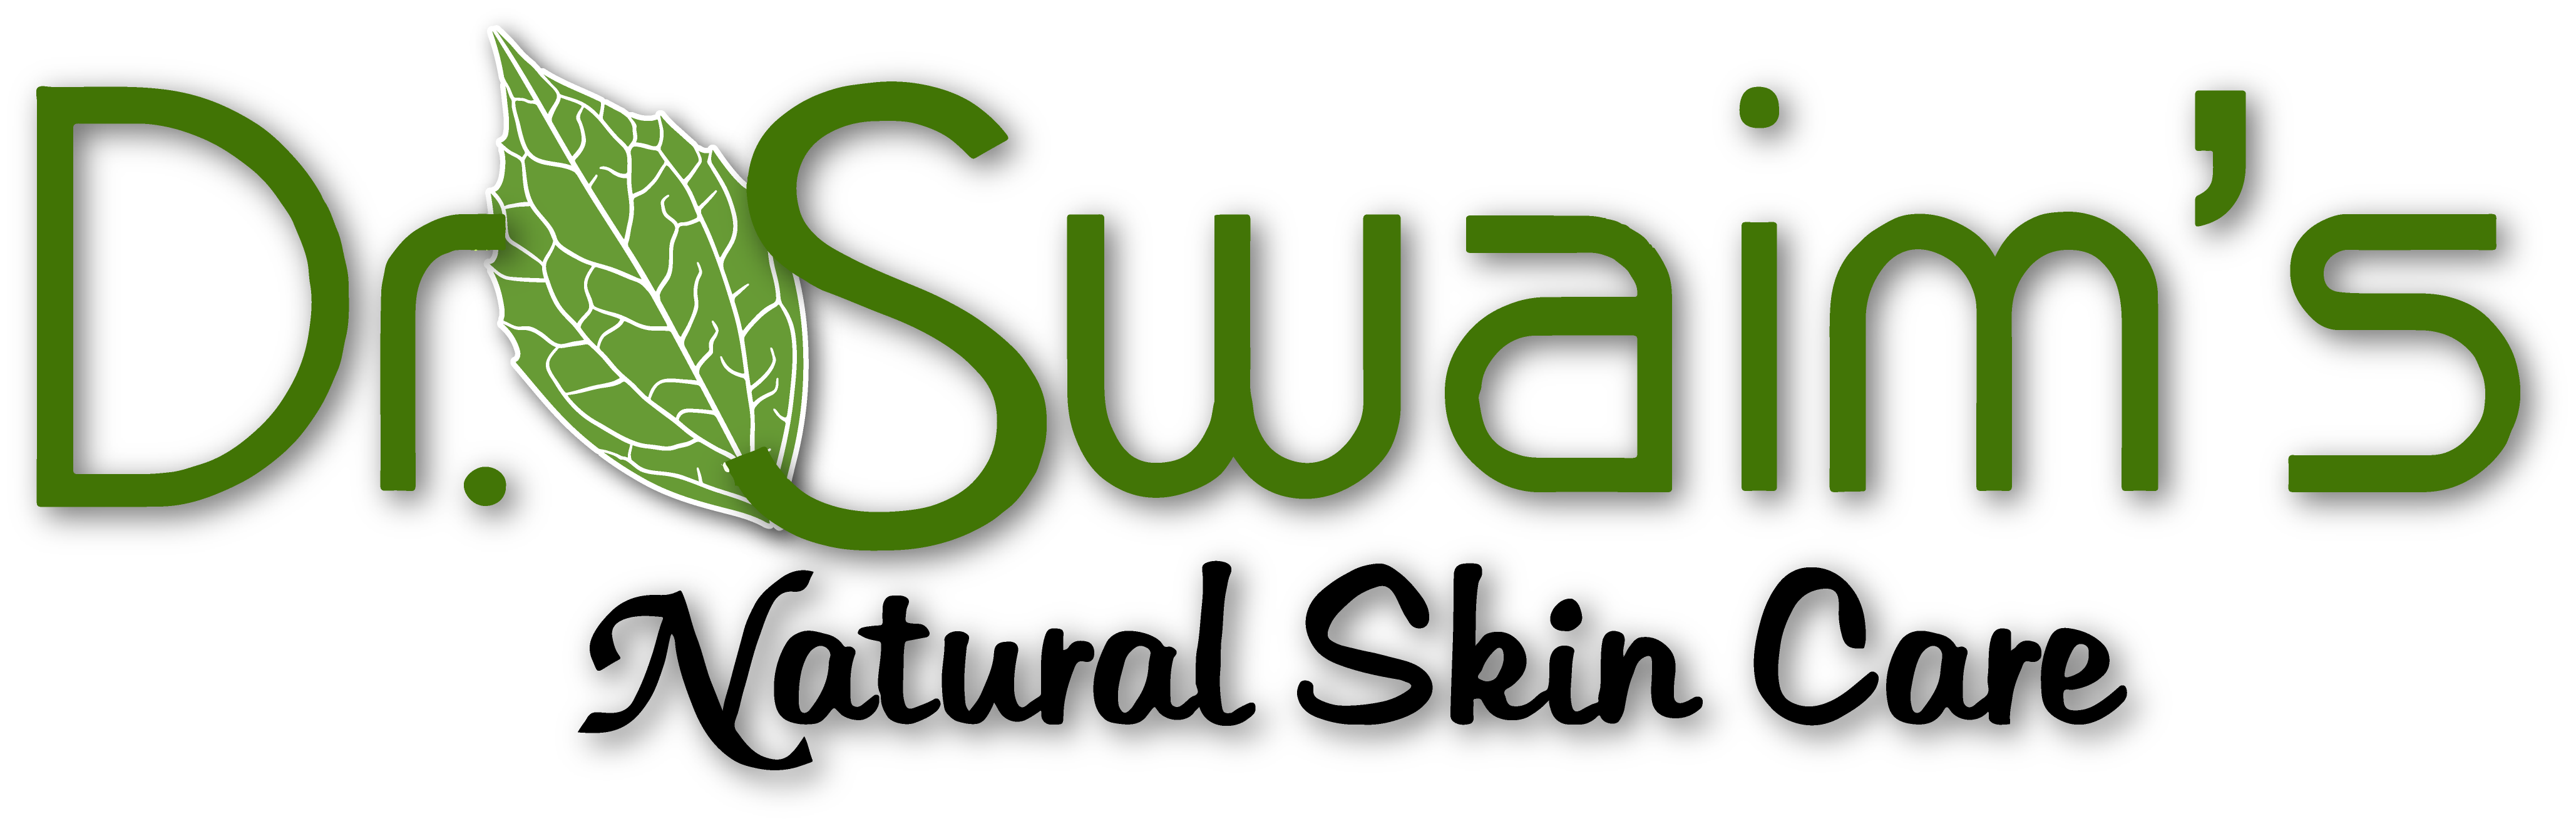 Dr. Swaim's Natural Skin Care Logo